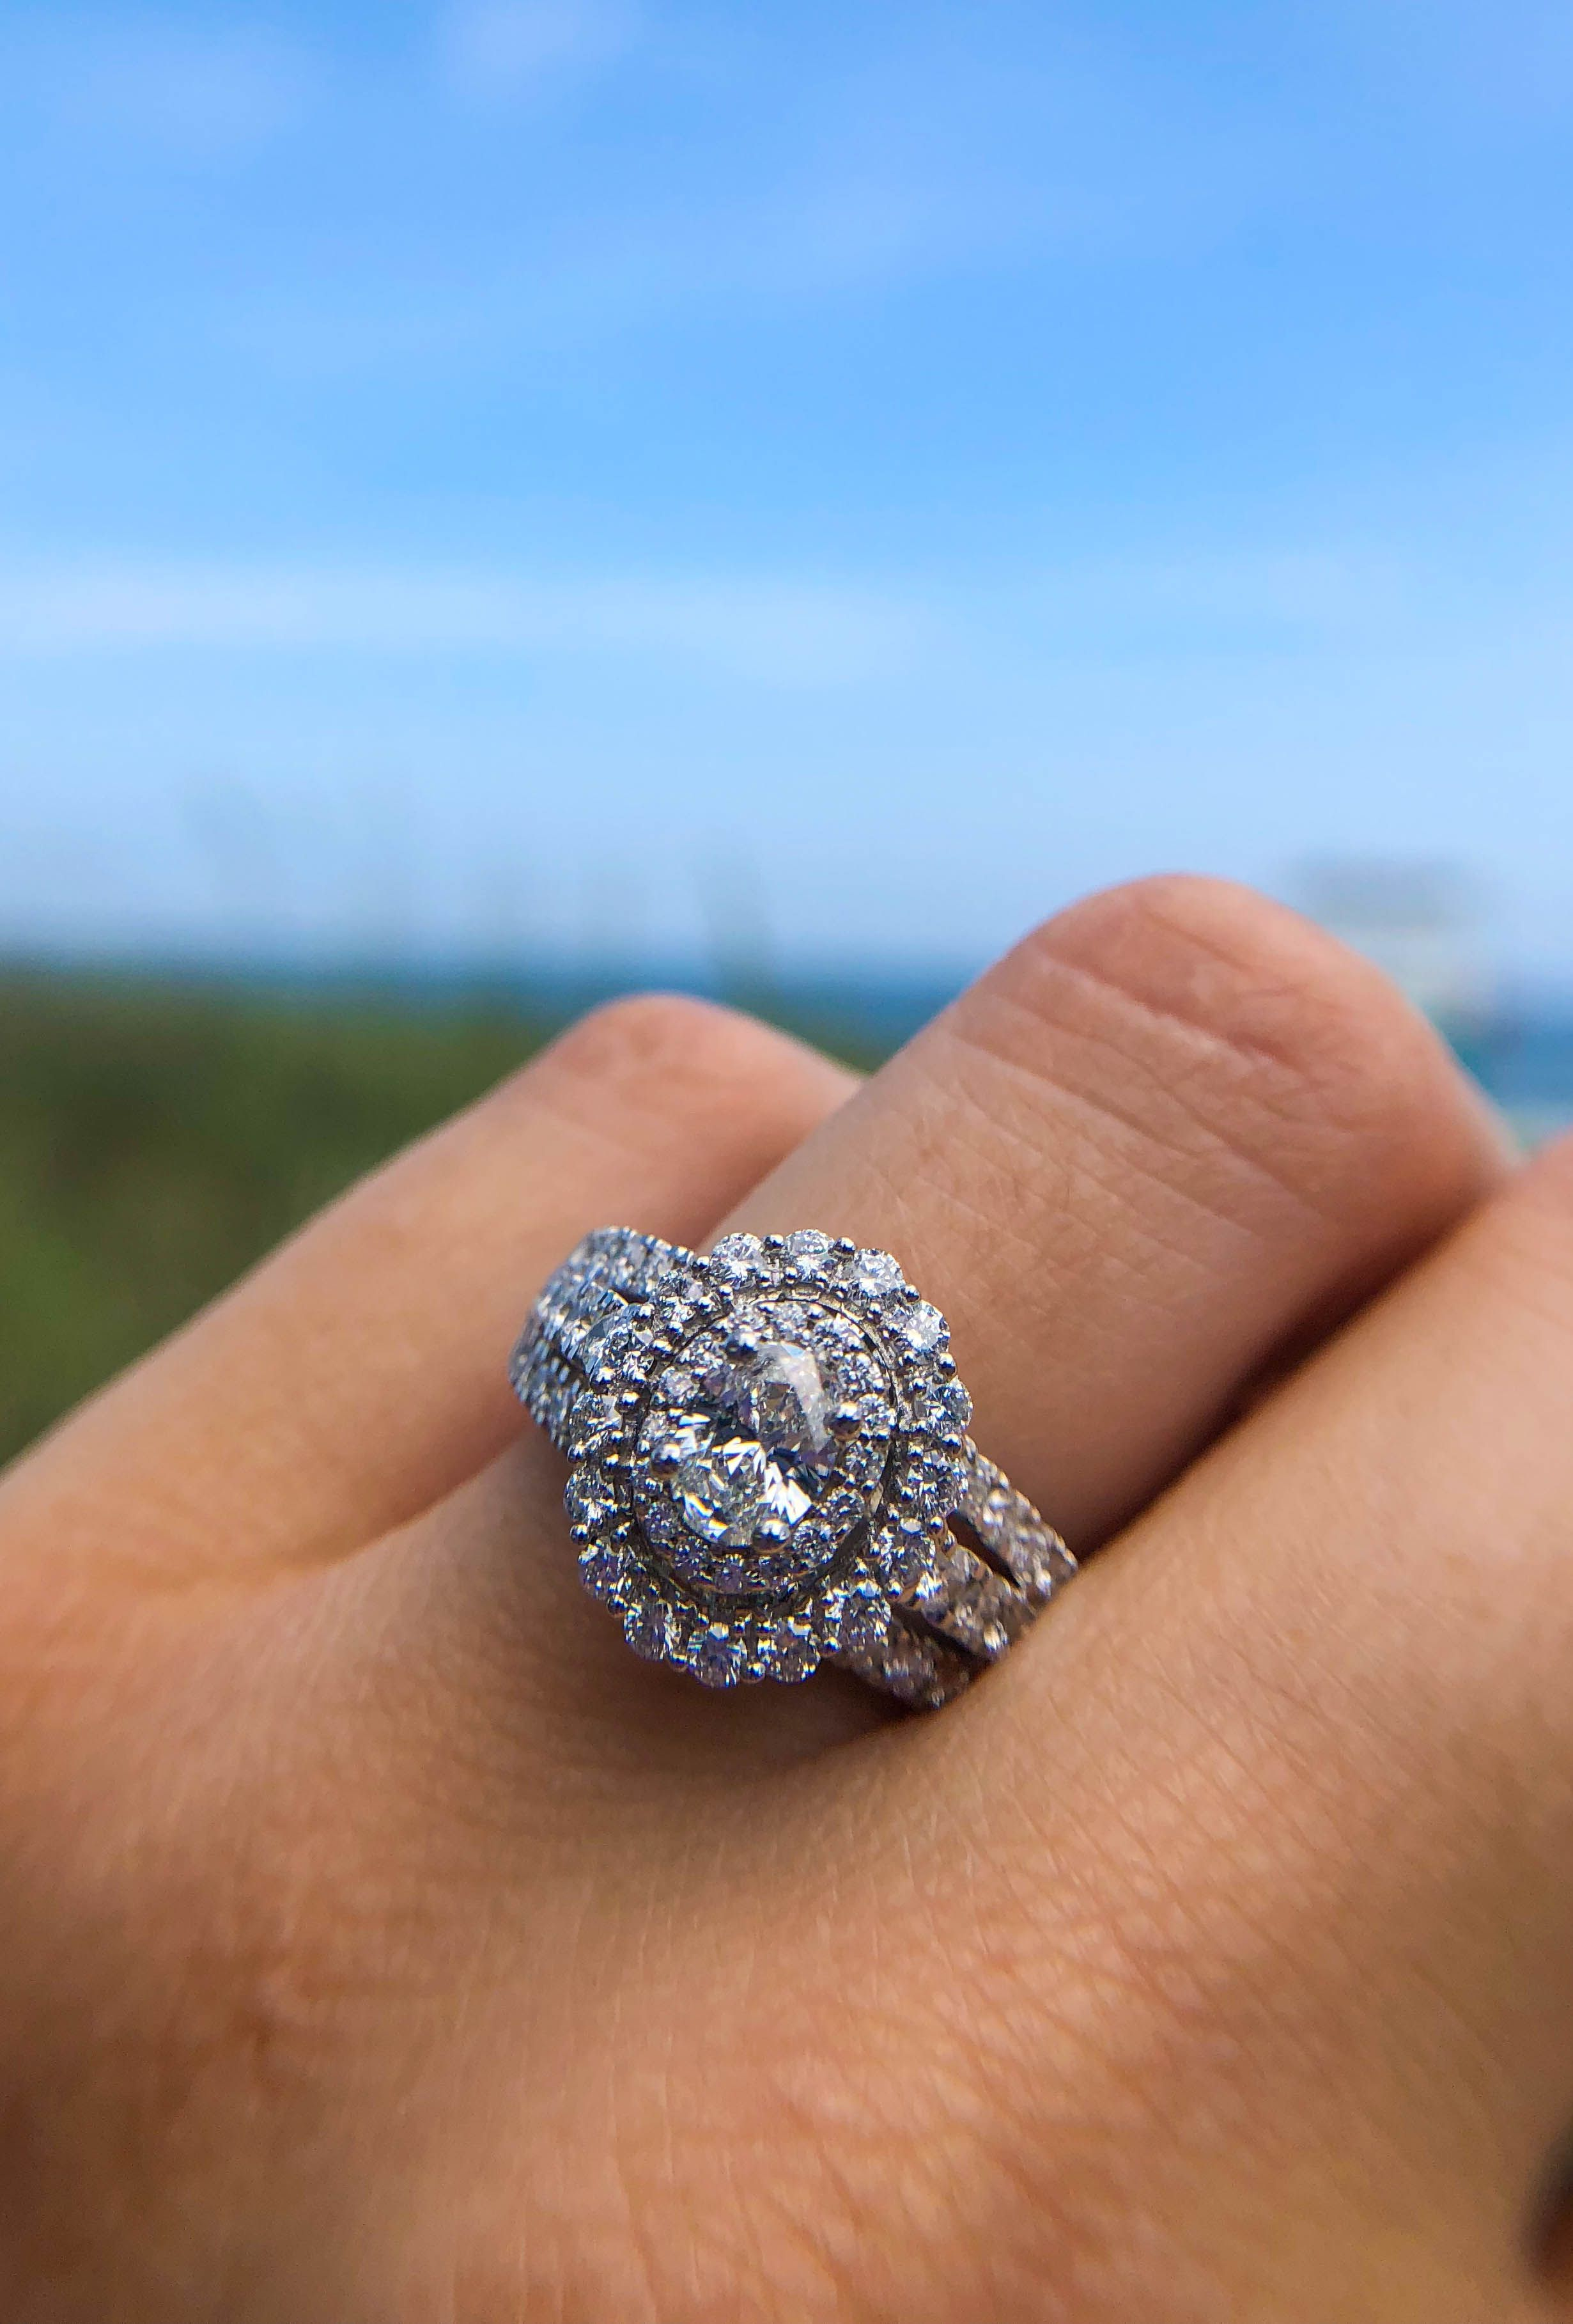 Ellaura Couture Oval Diamond Engagement Ring 1 5 8ctw Oval Diamond Engagement Ring Engagement Rings Engagement Ring Styles